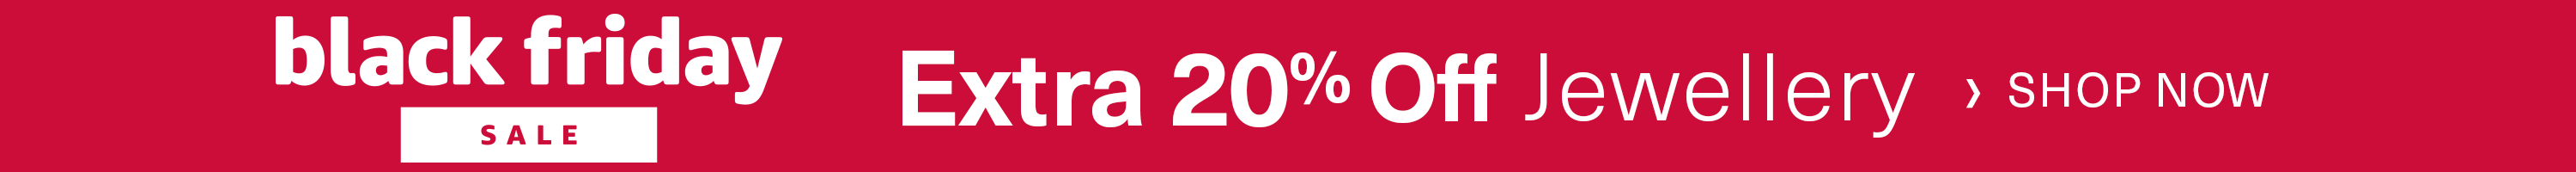 Extra 20% off Jewellery